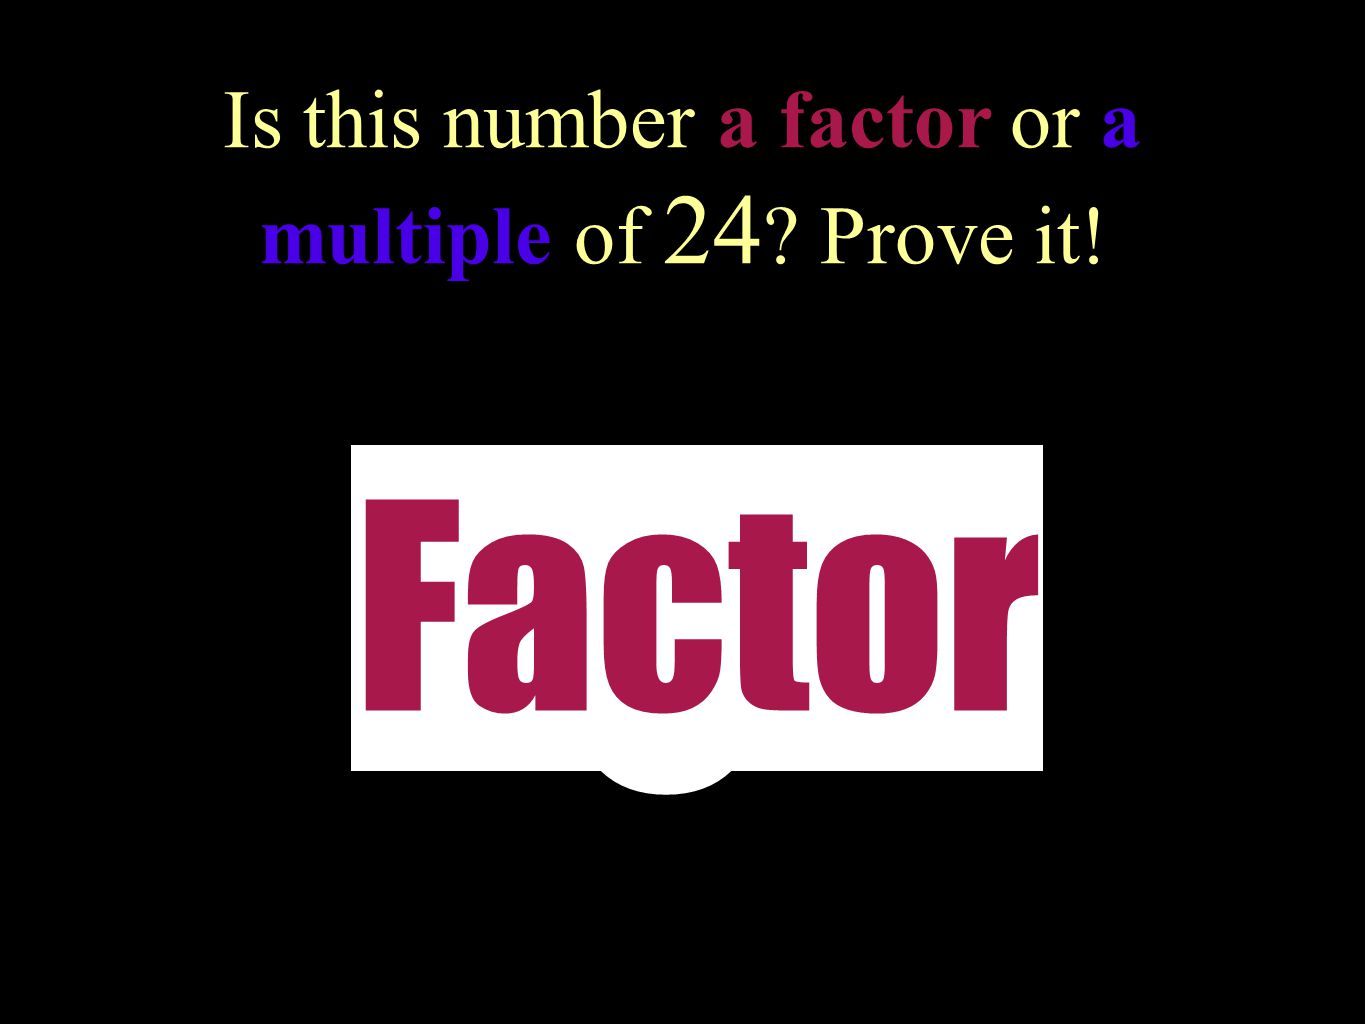 Is this number a factor or a multiple of 24 Prove it!